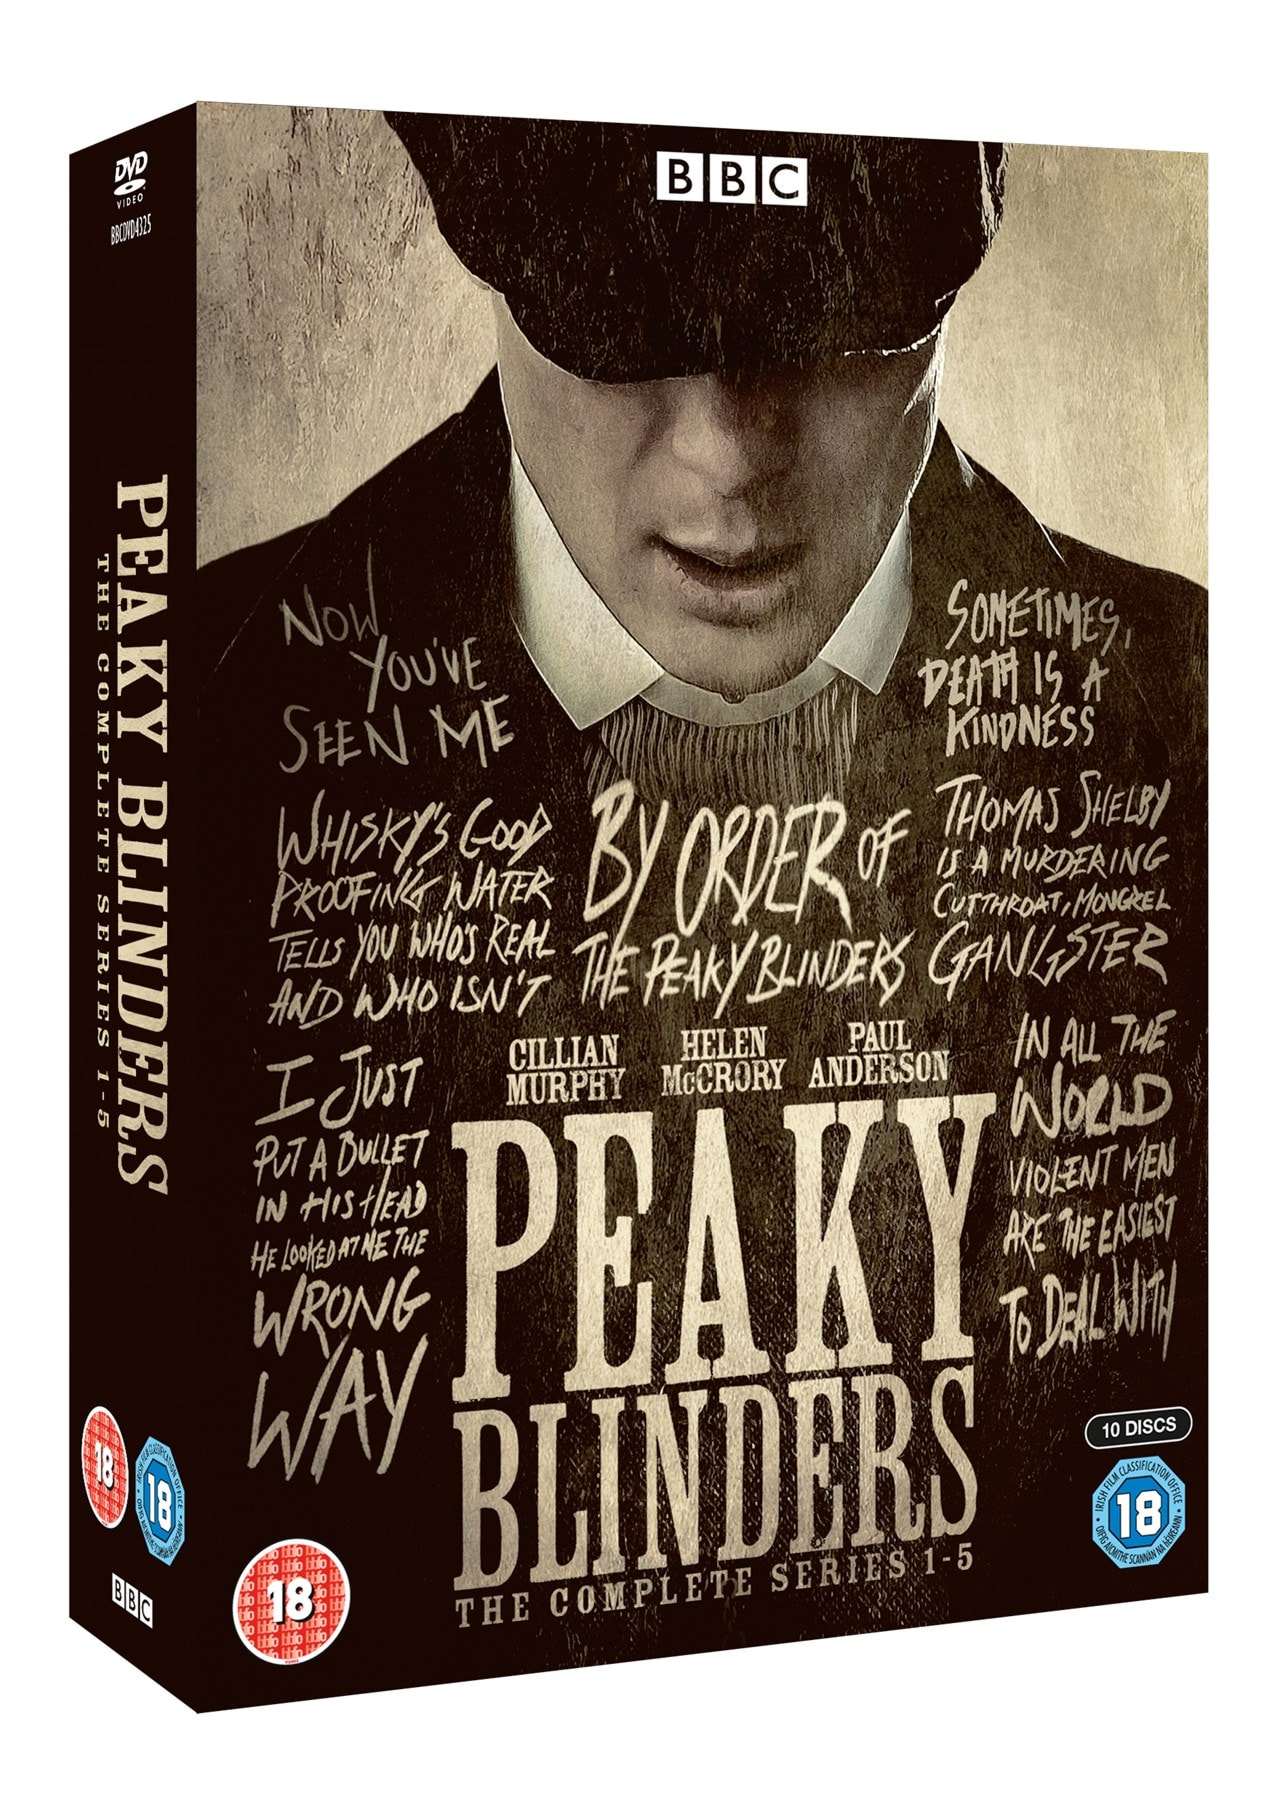 Peaky Blinders: The Complete Series 1-5 - 2